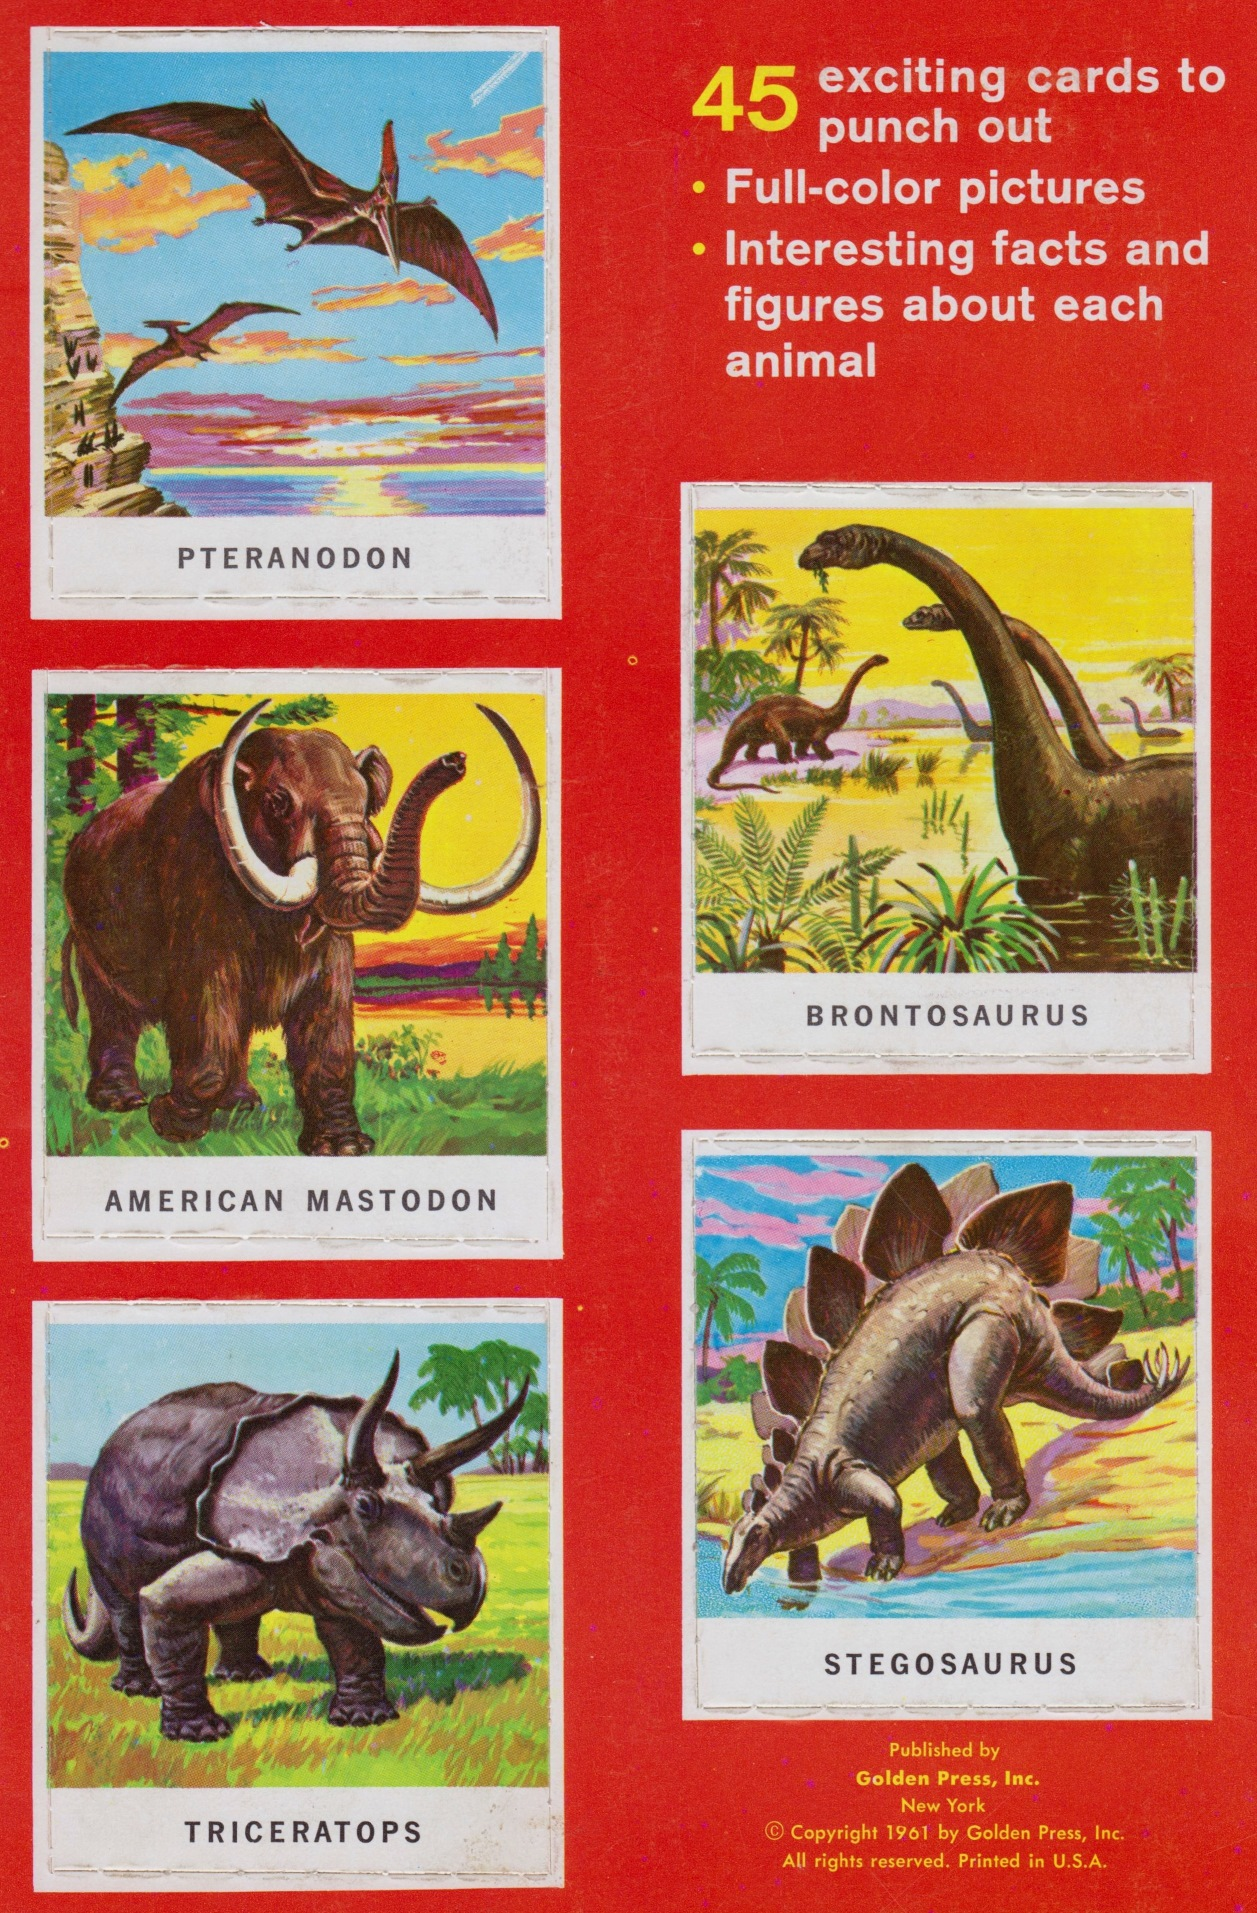 Golden funtime animals of the past Cover close up